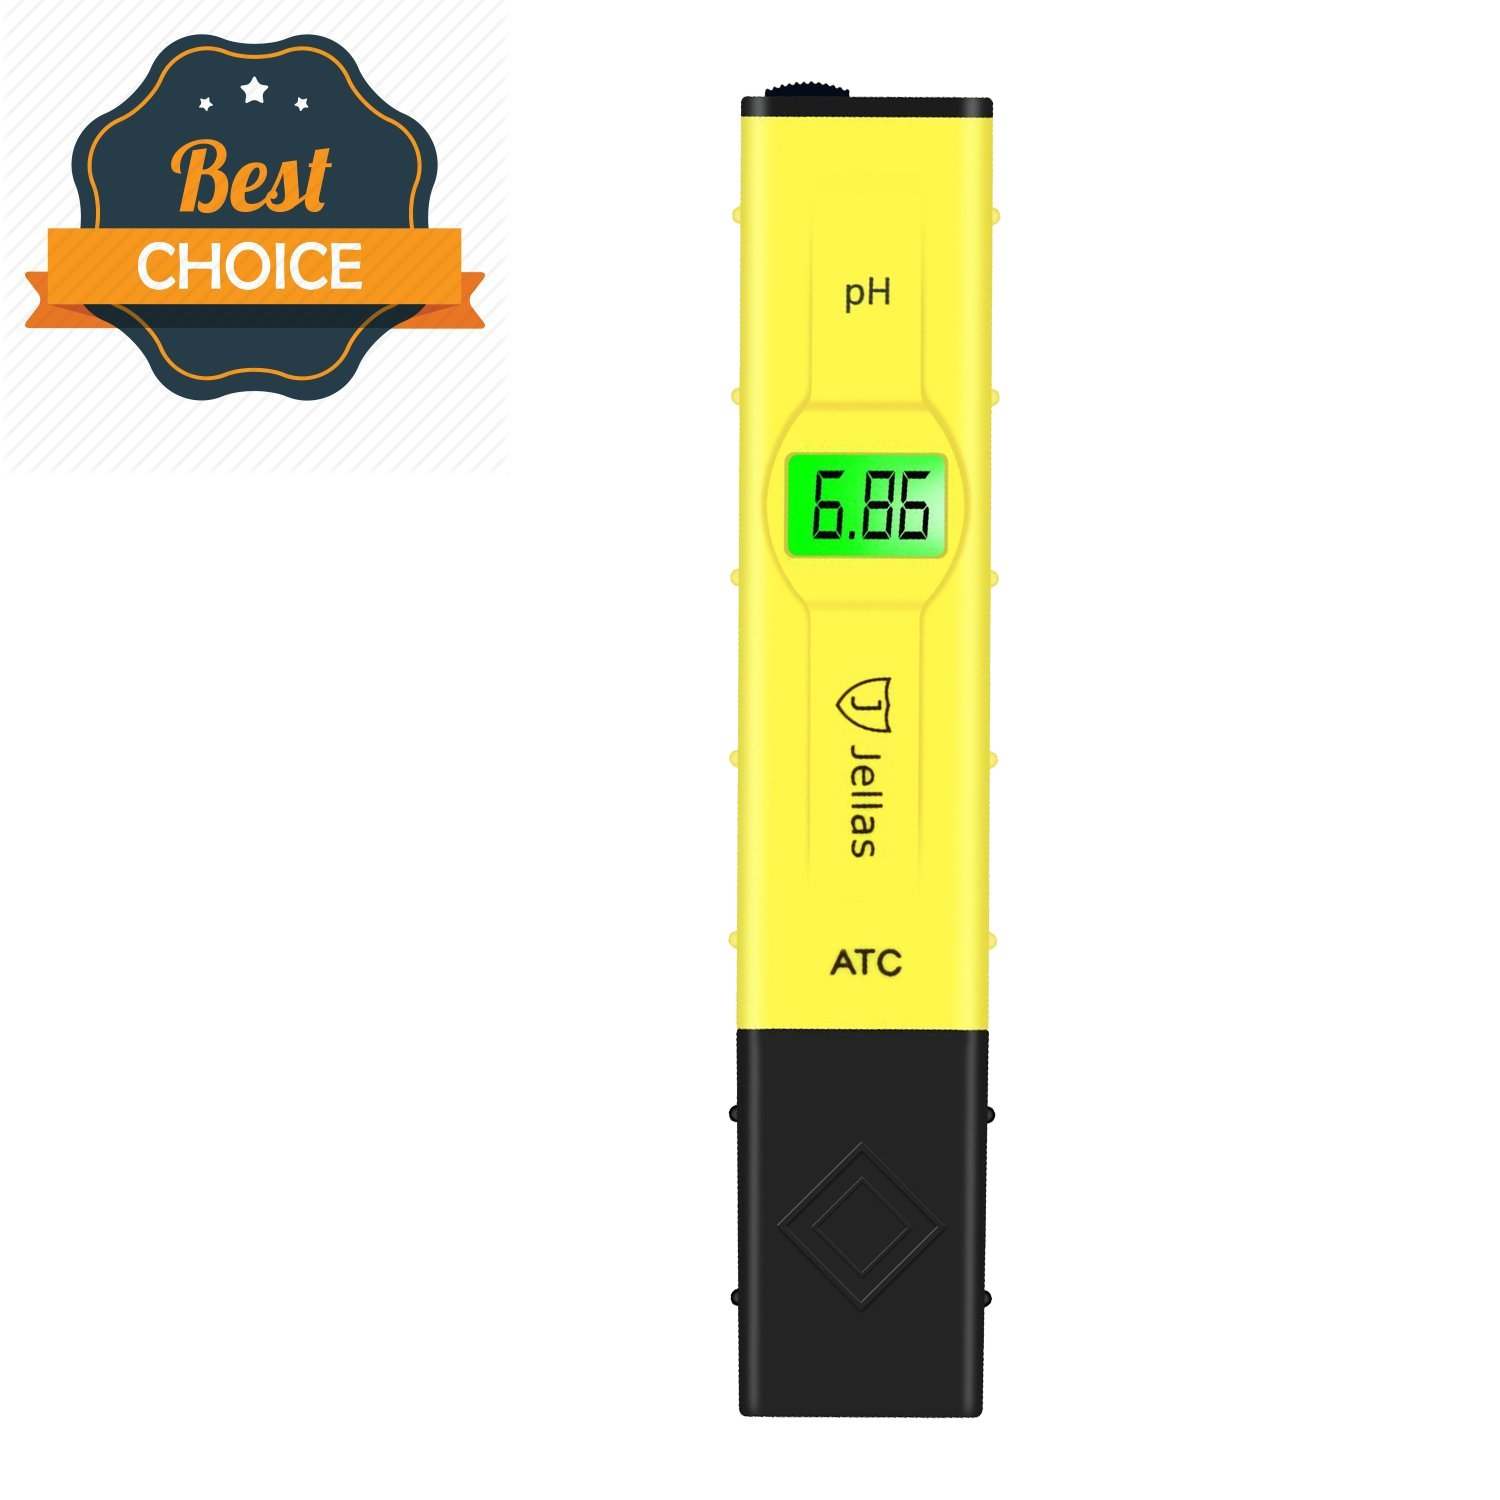 Digital pH meter tester - Jellas 0.01 High Accuracy Water Quality Tester for Household Drinking Water Swimming Pools Aquariums Hydroponics 0-14 pH Measurement (Yellow - pH Tester with ATC)